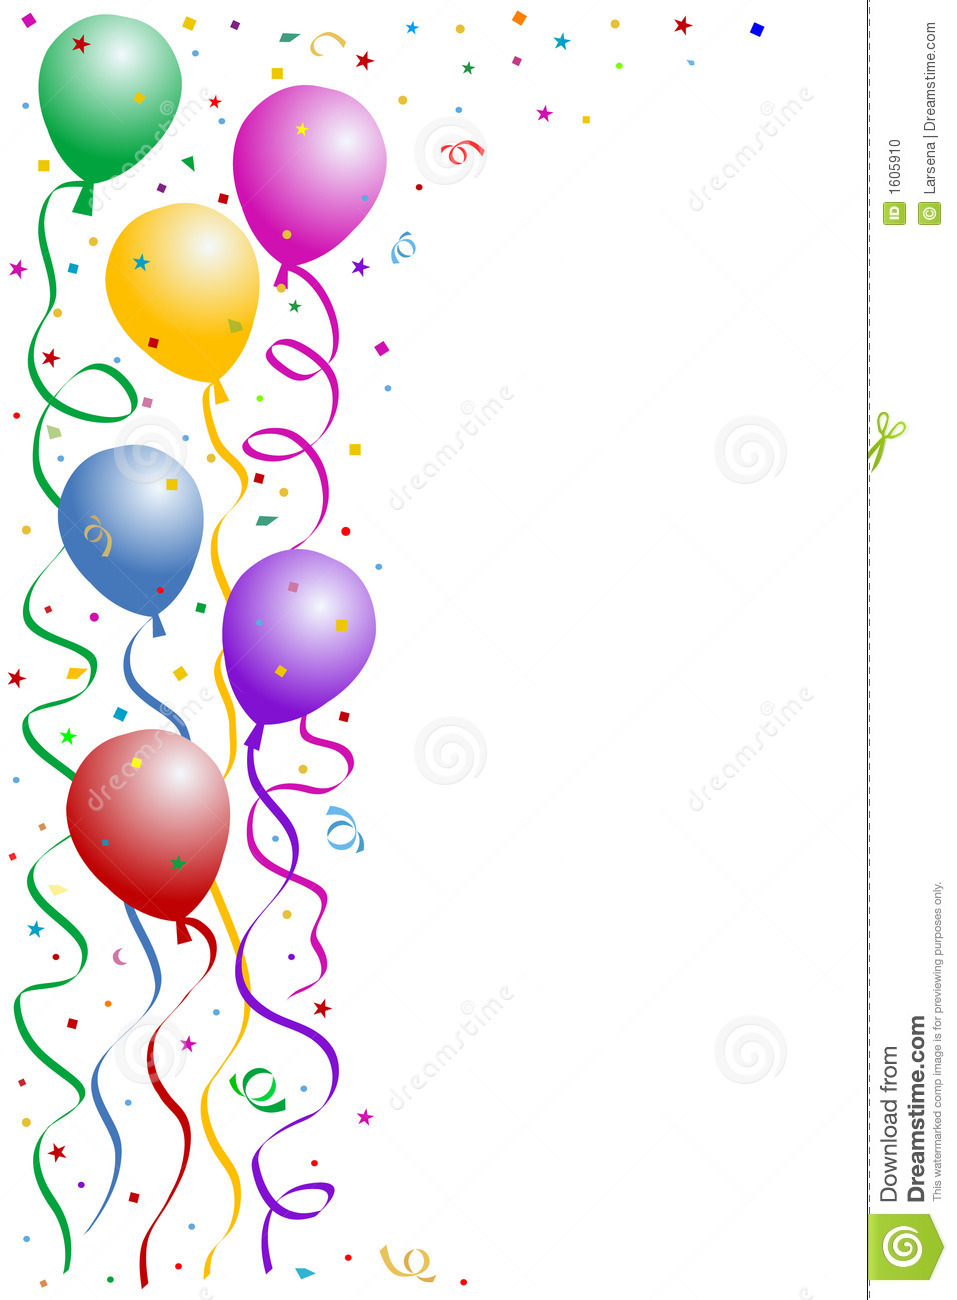 Birthday party frame Clipart Panda Free Clipart Images